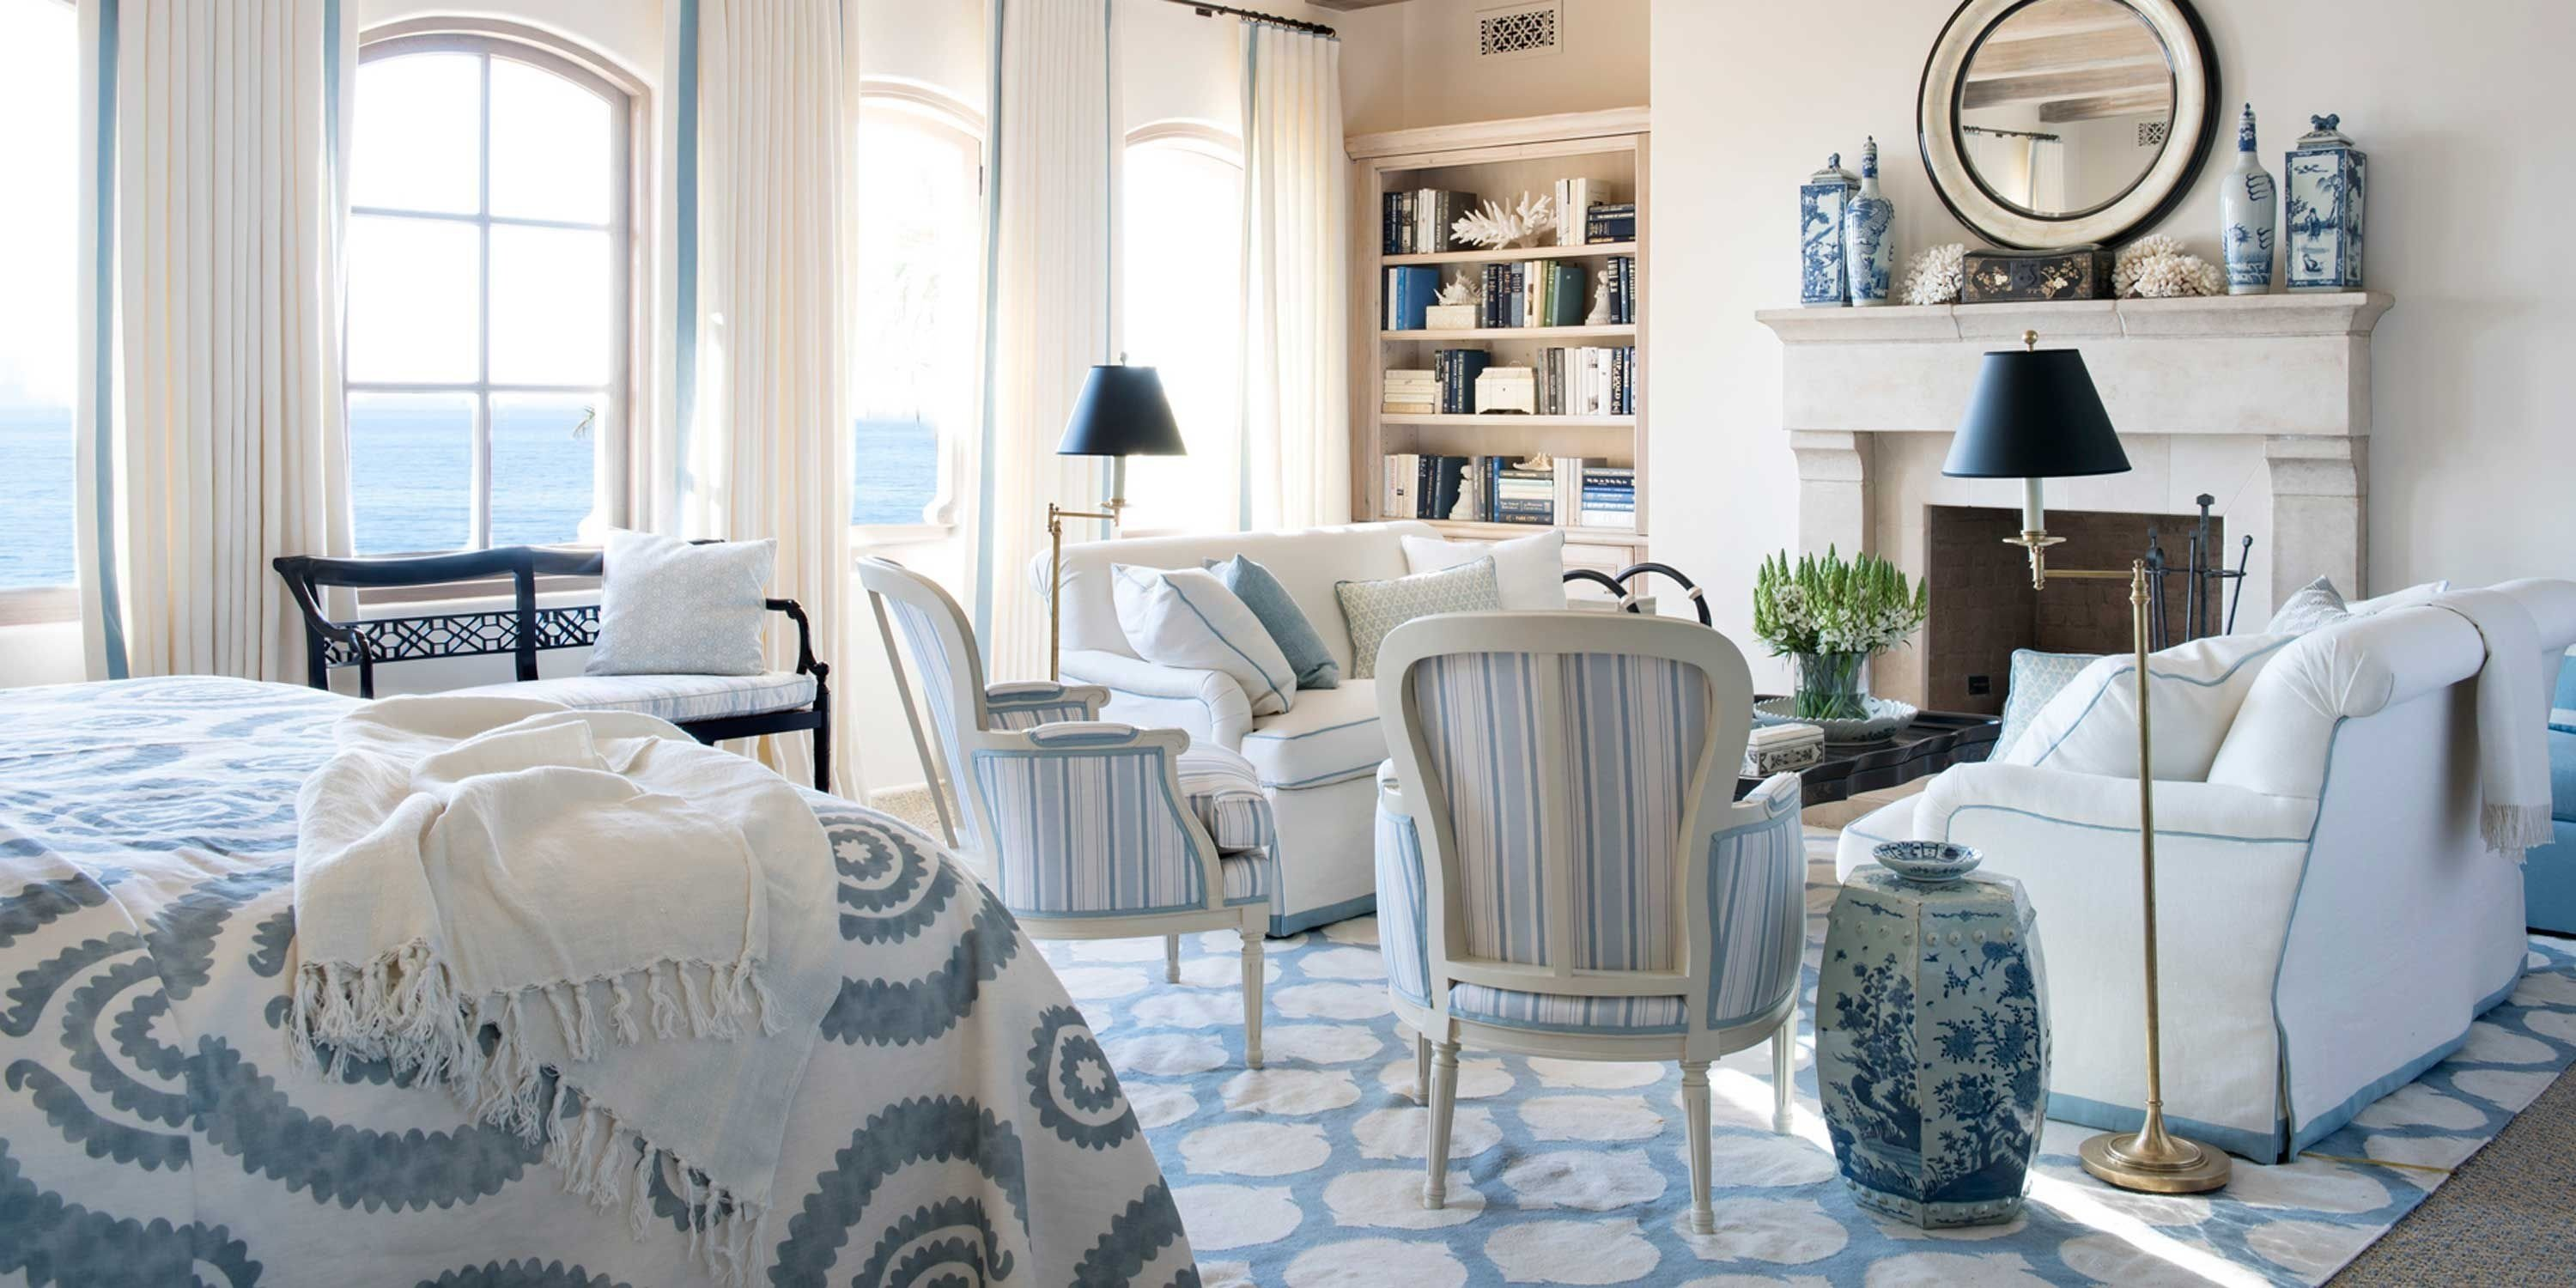 10 Most Recommended Blue Living Room Decorating Ideas blue and white rooms decorating with blue and white 2020